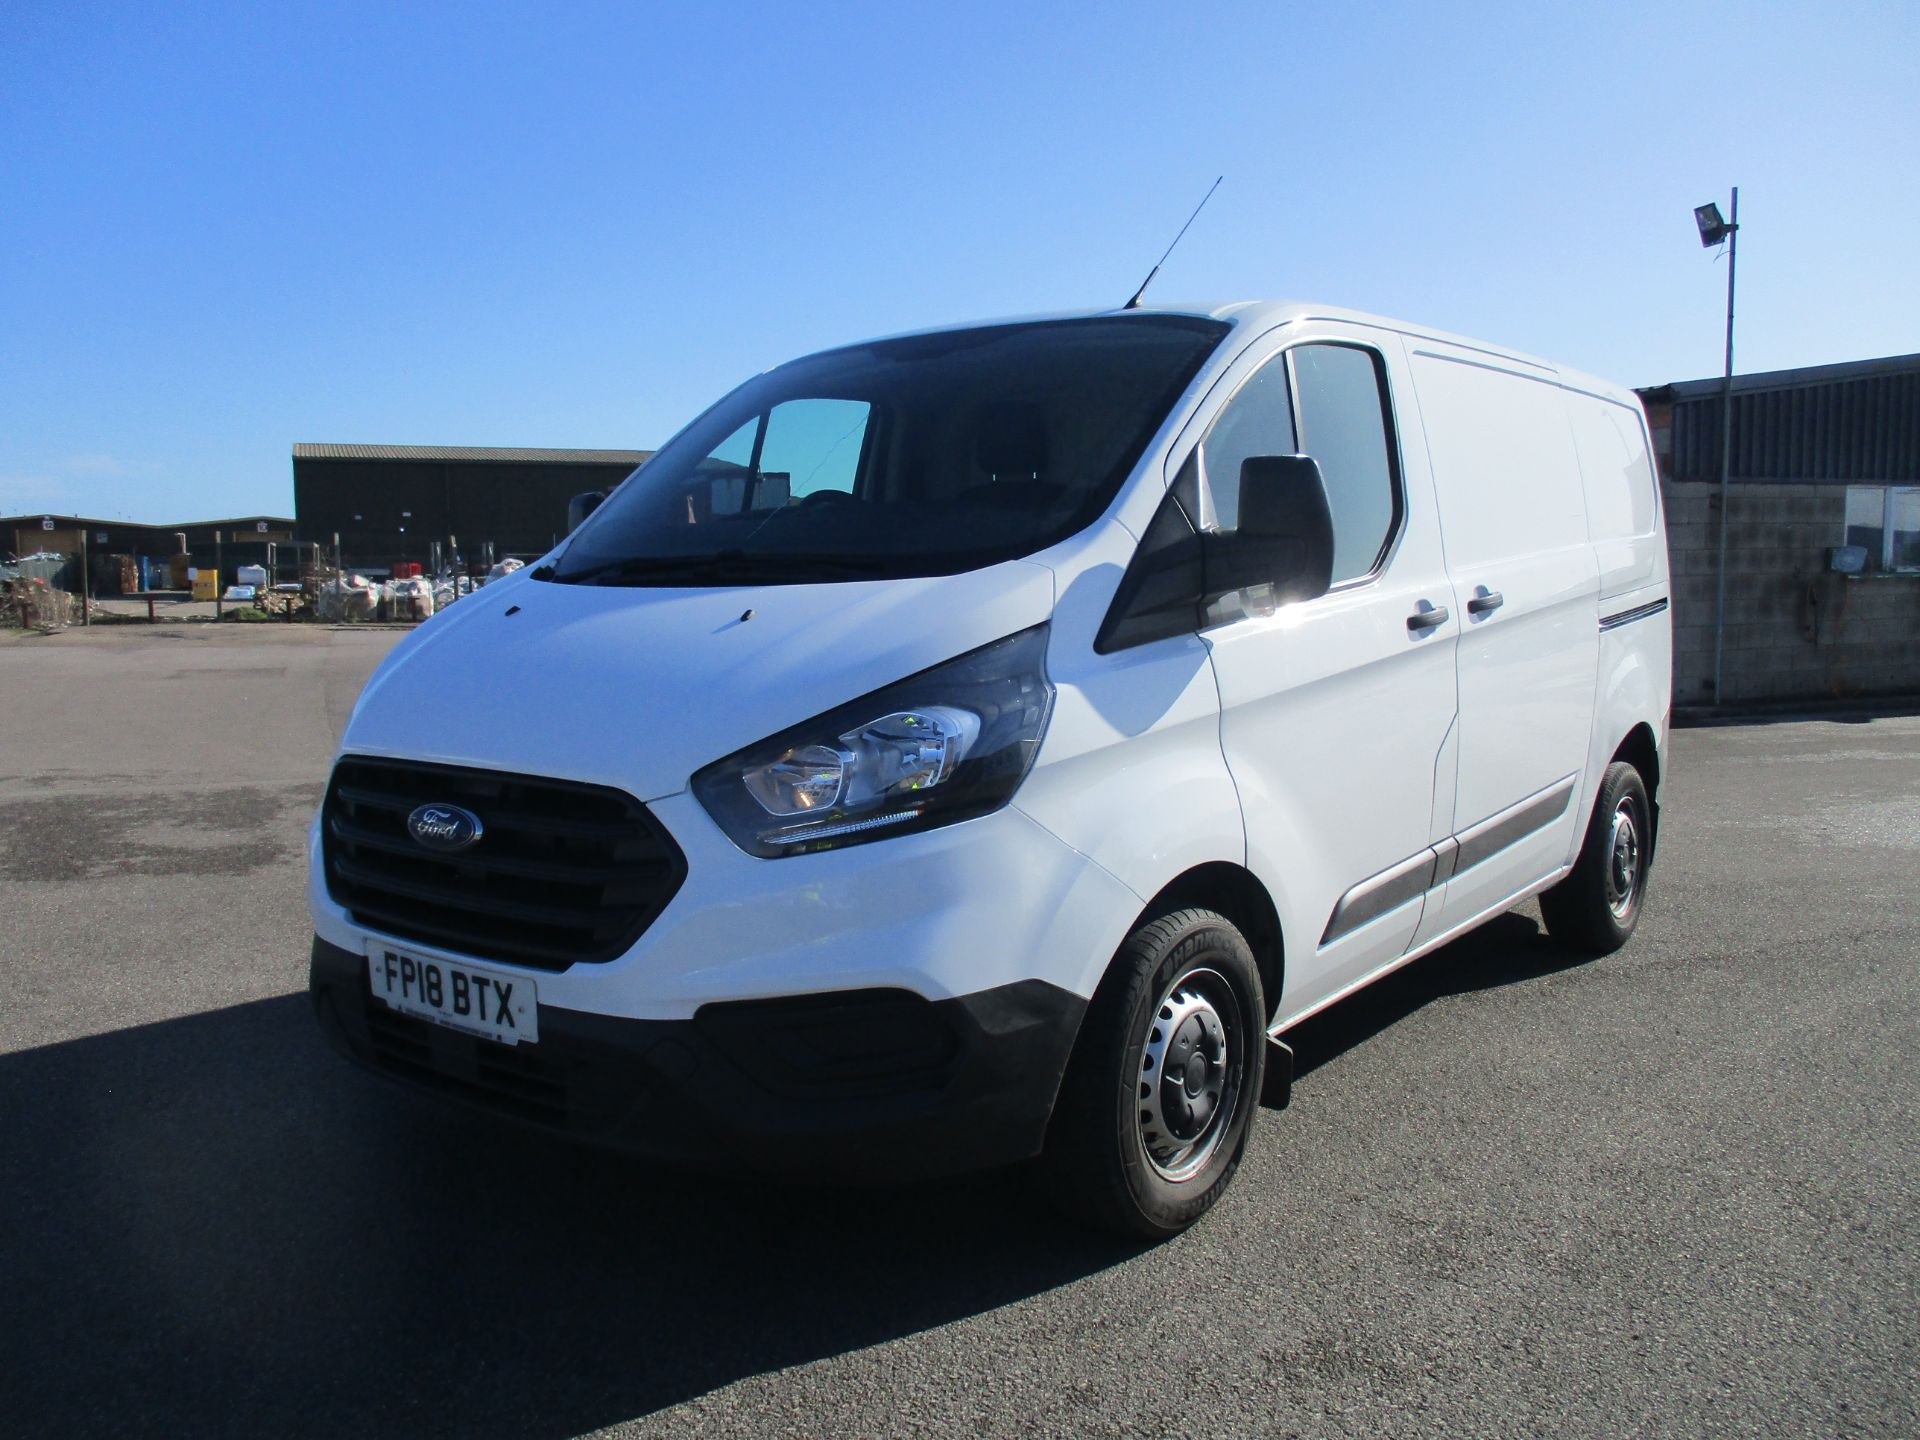 2018 Ford Transit Custom 300 L1 DIESEL FWD 2.0 TDCI 105PS LOW ROOF VAN EURO 6 (FP18BTX) Thumbnail 3